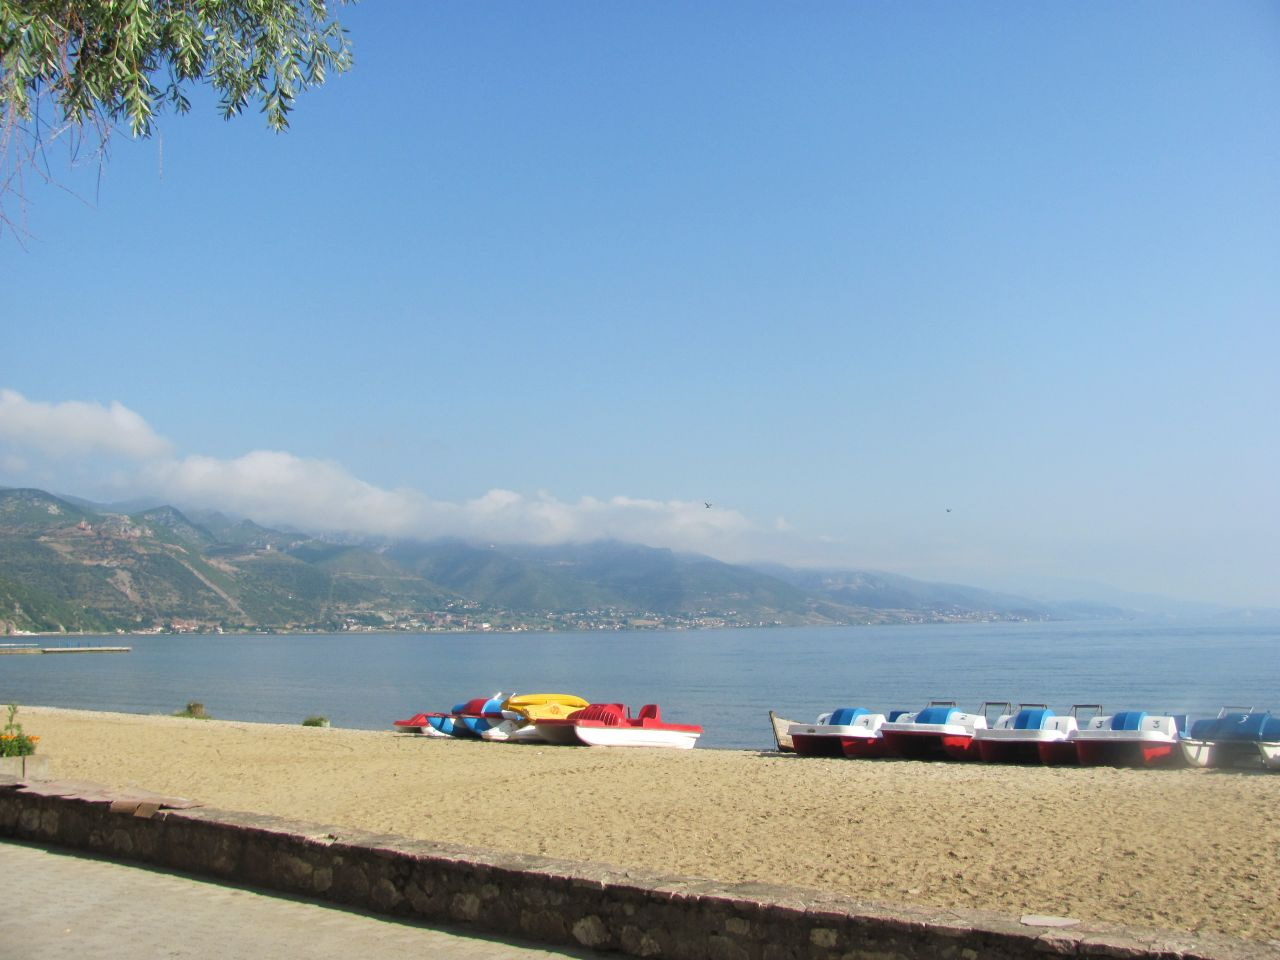 Holiday in Ohrid Lake. Apartments in Pogradec